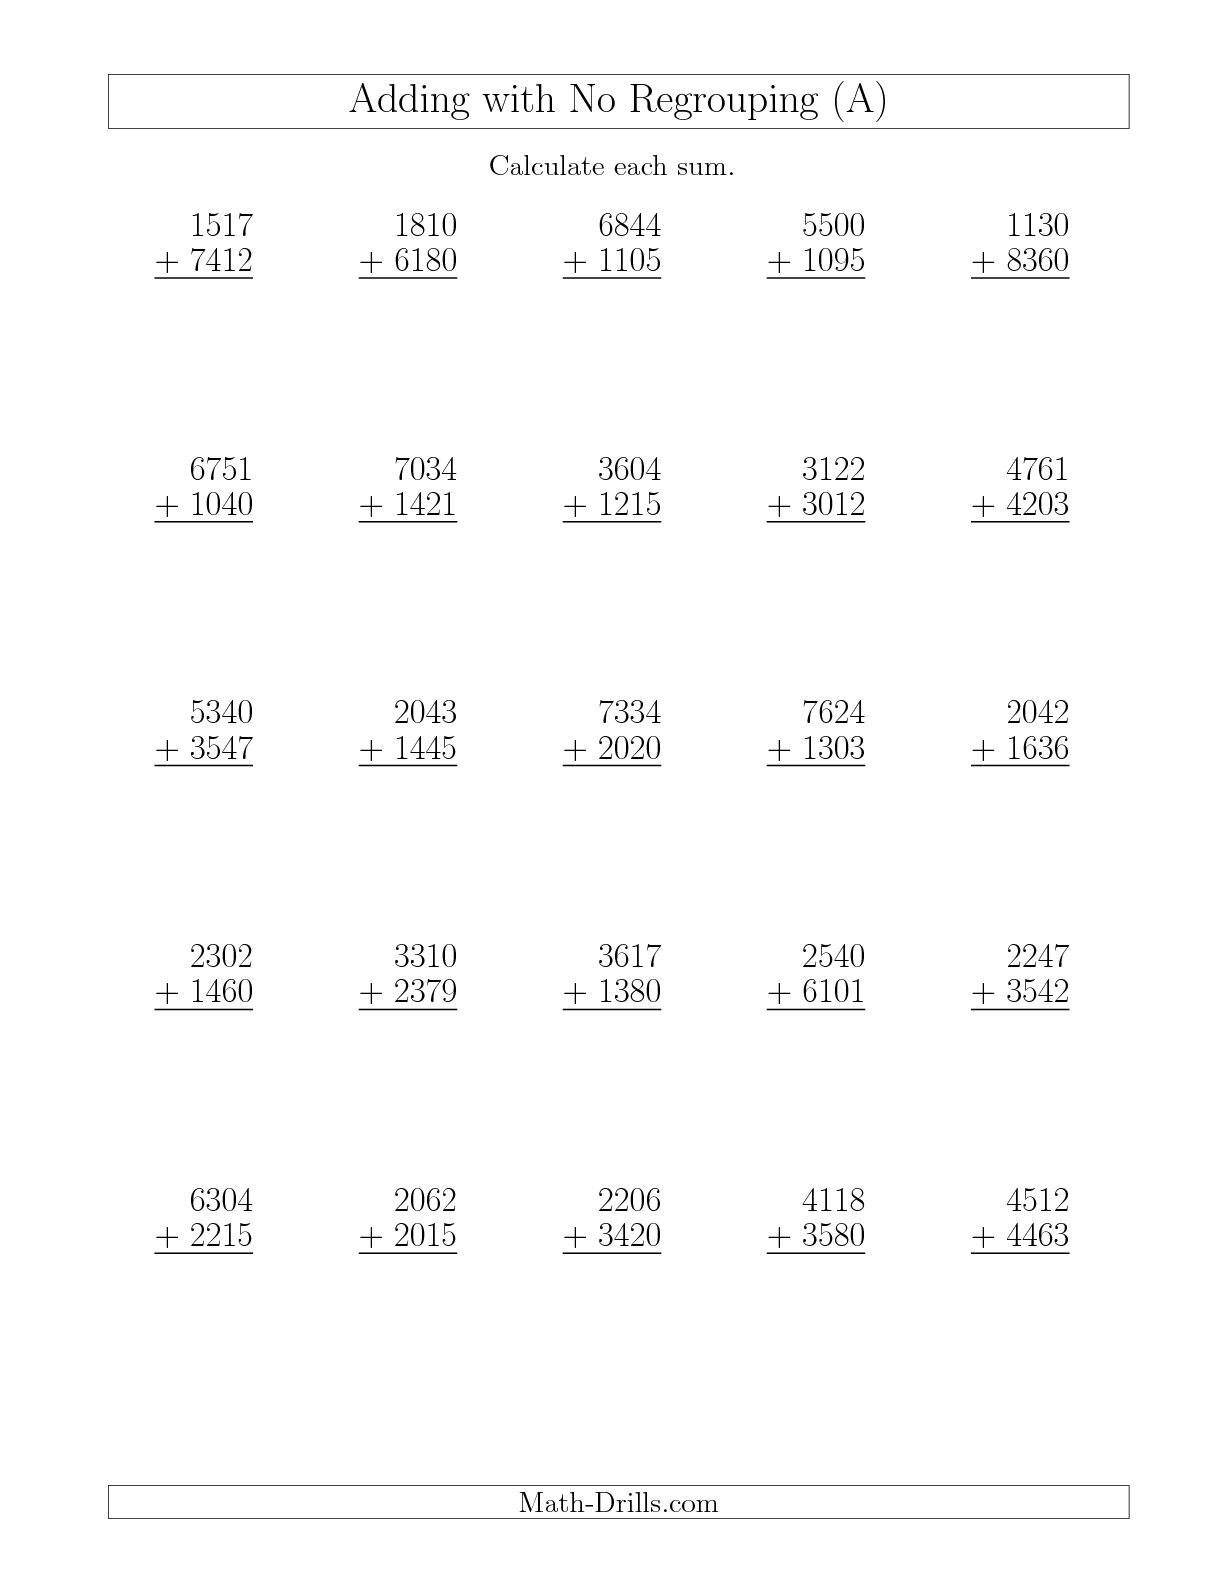 worksheet Addition With Renaming Worksheets new 2015 10 08 adding 4 digit and numbers with no regrouping a math worksheet